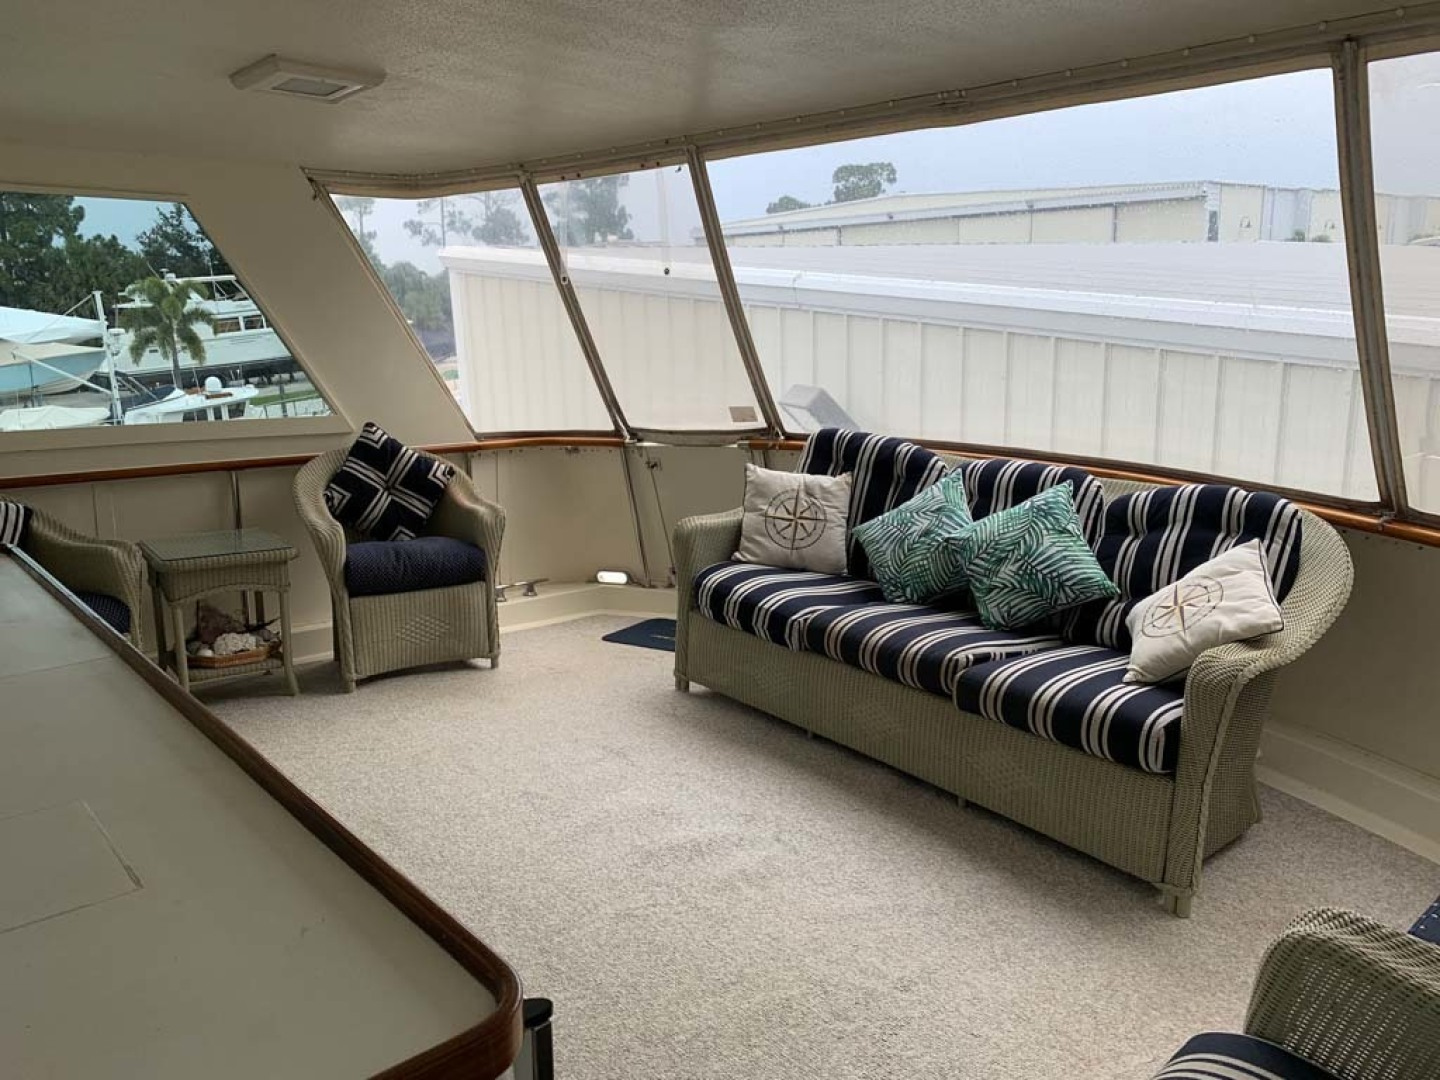 Hatteras-Euro Transom Motor Yacht 1989-Different Drummer II Stuart-Florida-United States-Aft Deck Sofa-1450017 | Thumbnail